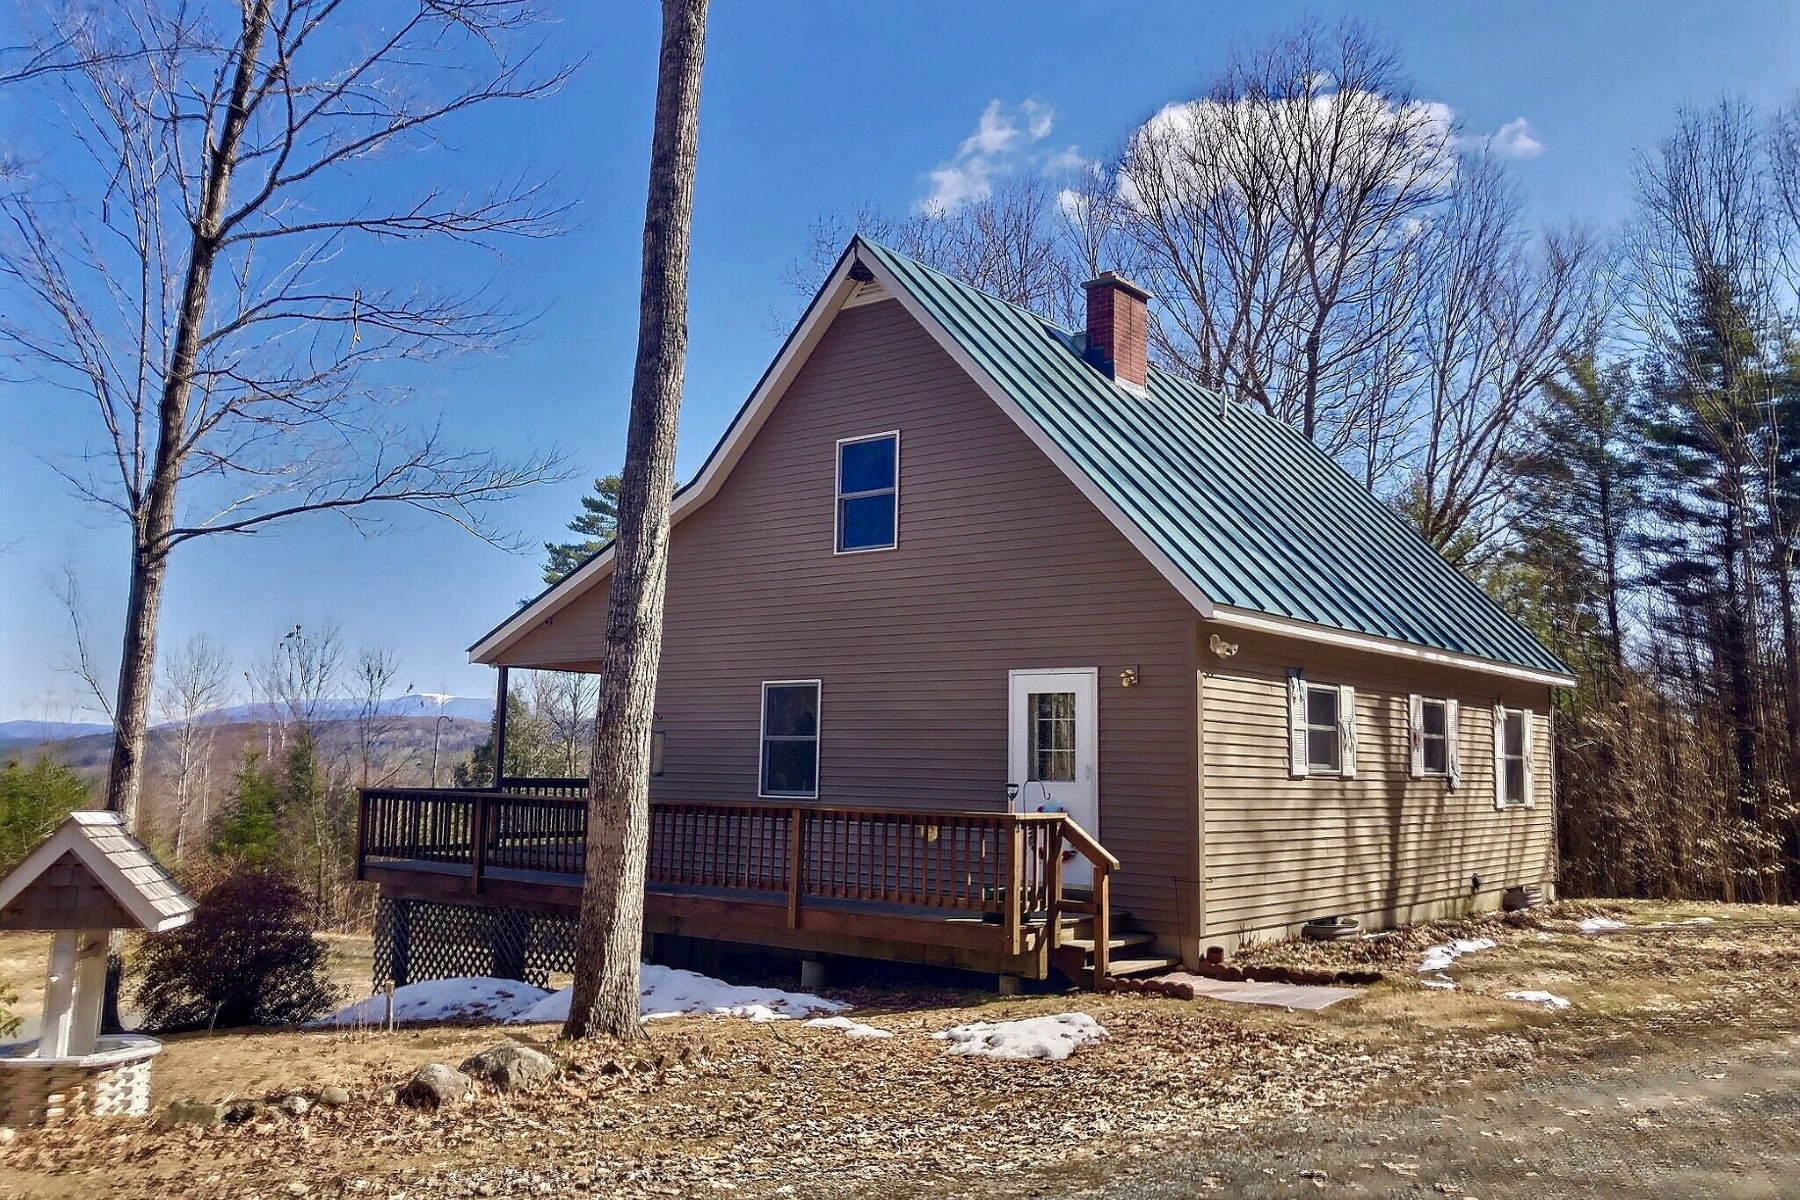 Single Family Homes for Sale at Three Bedroom Cape on 47 Acres 1158 Tenney Pond Road Newbury, Vermont 05051 United States